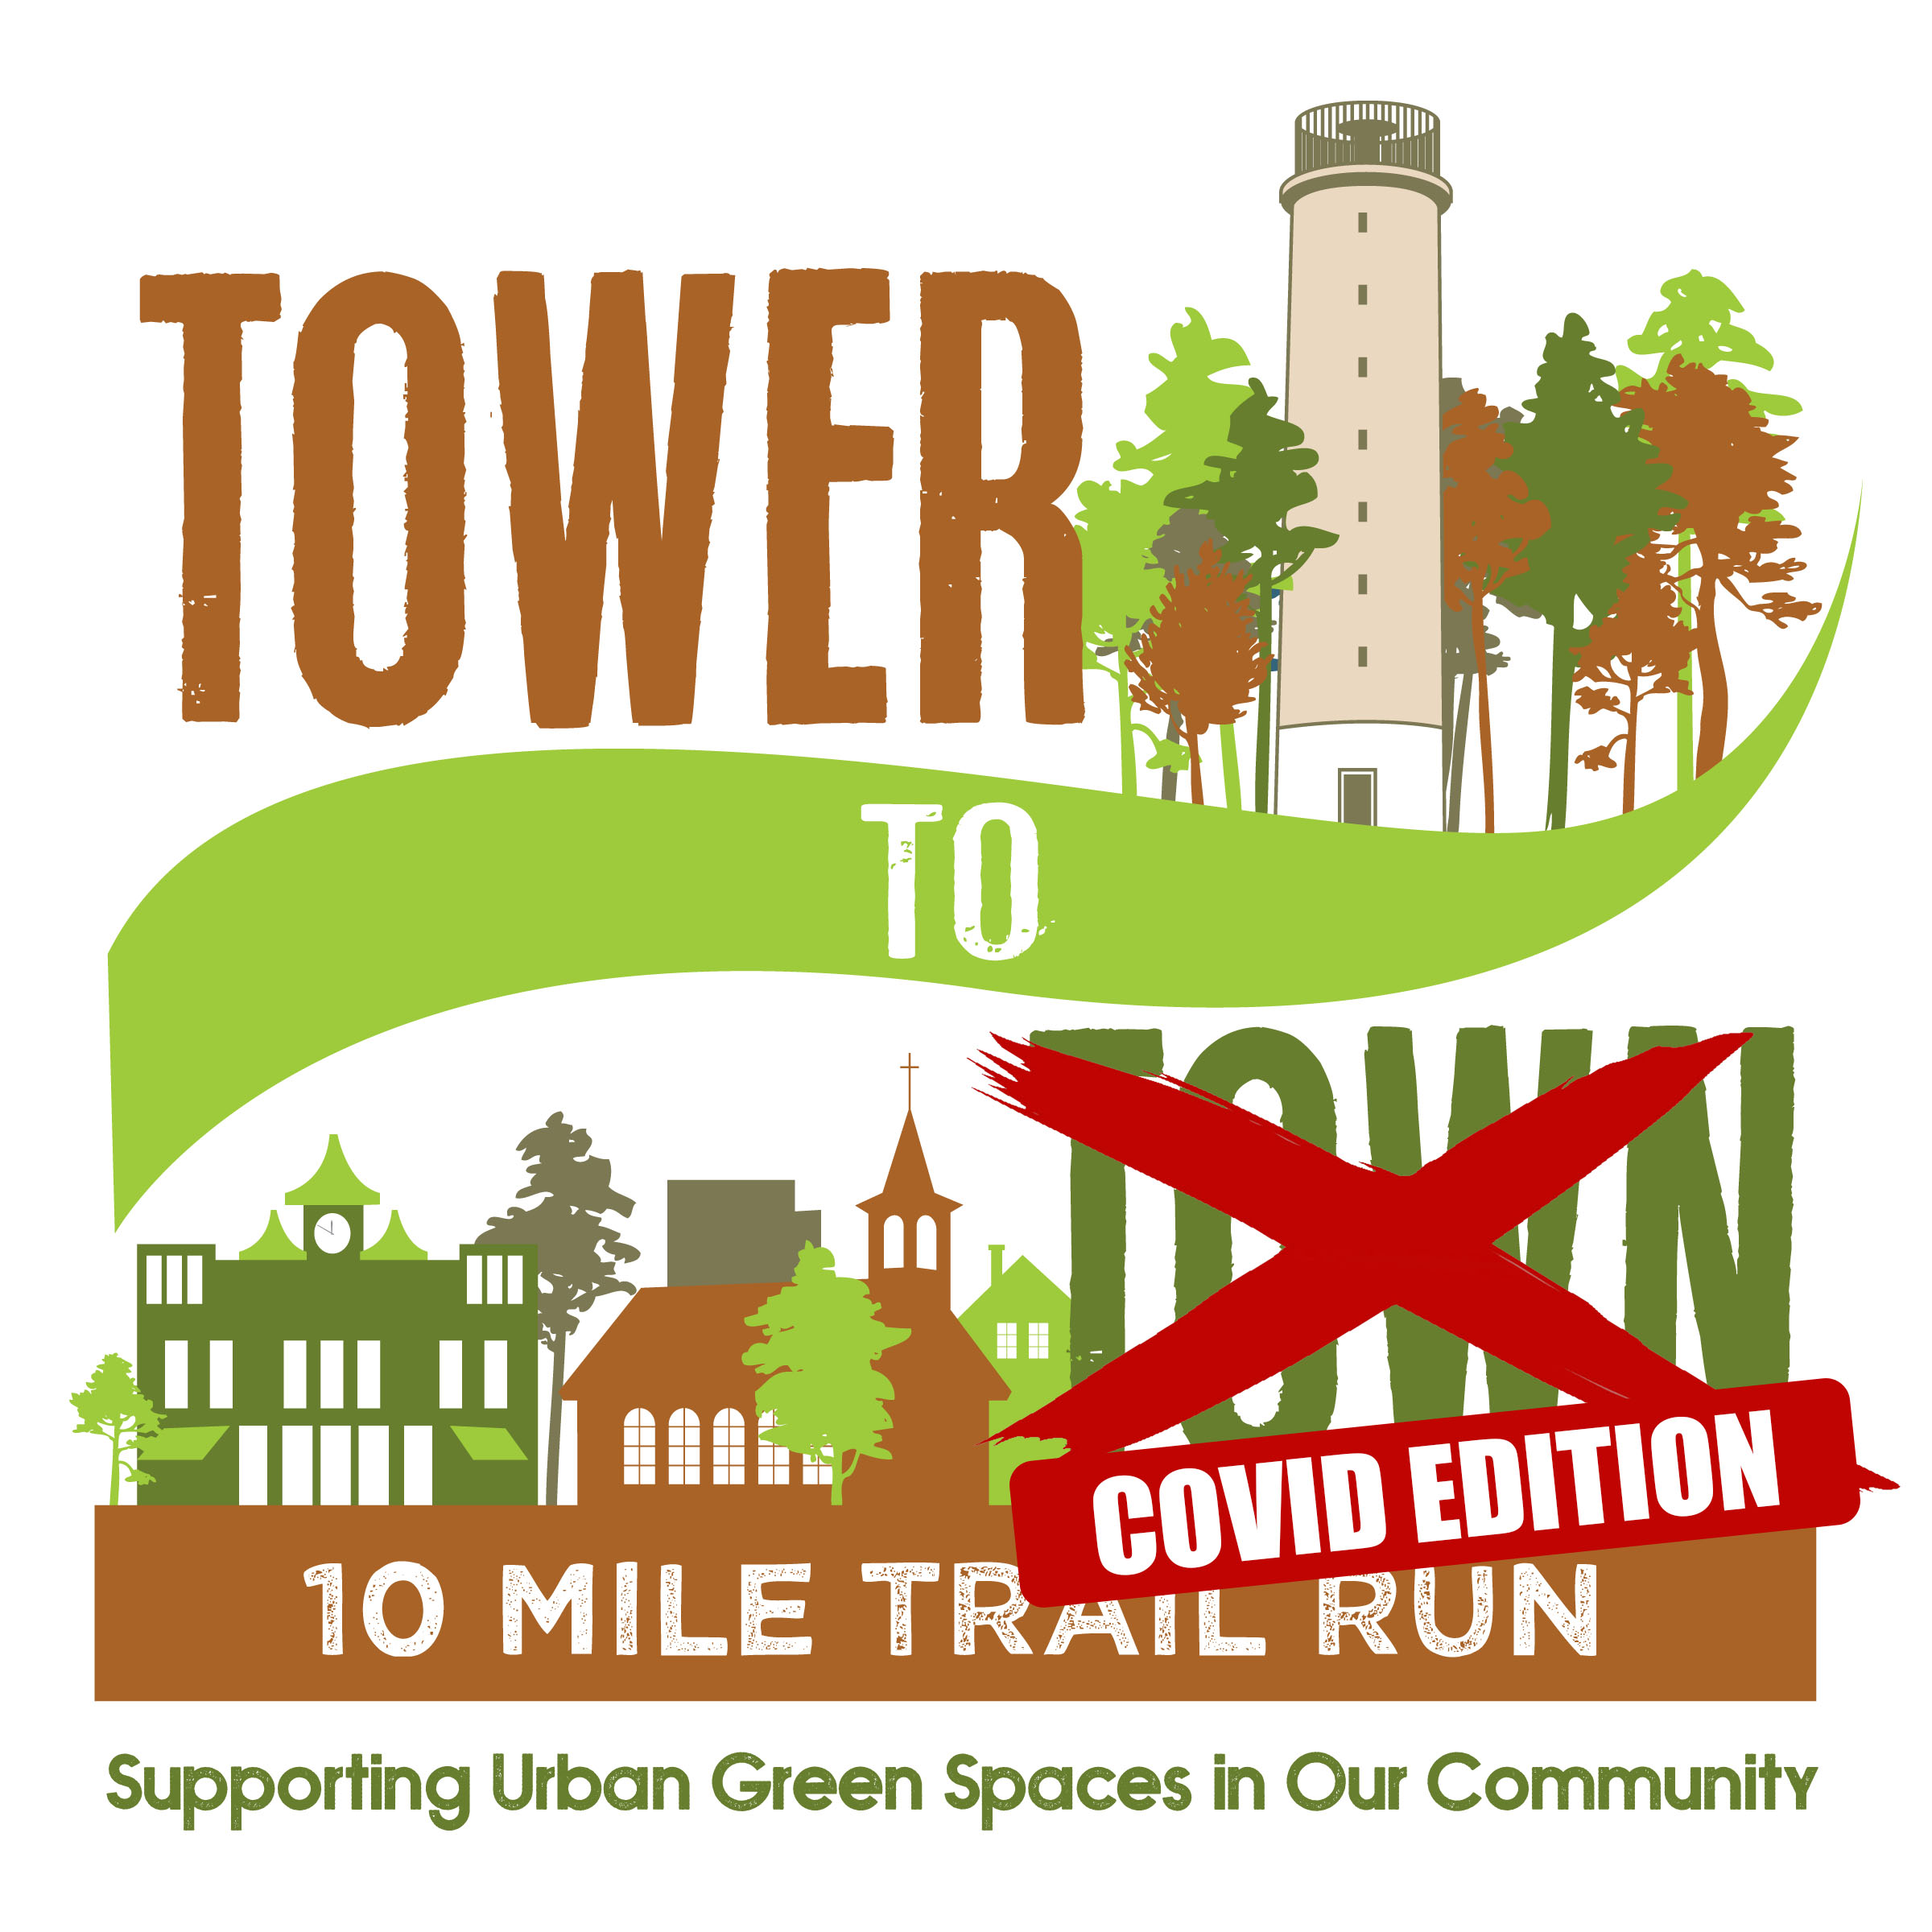 Tower to Town Race 2020